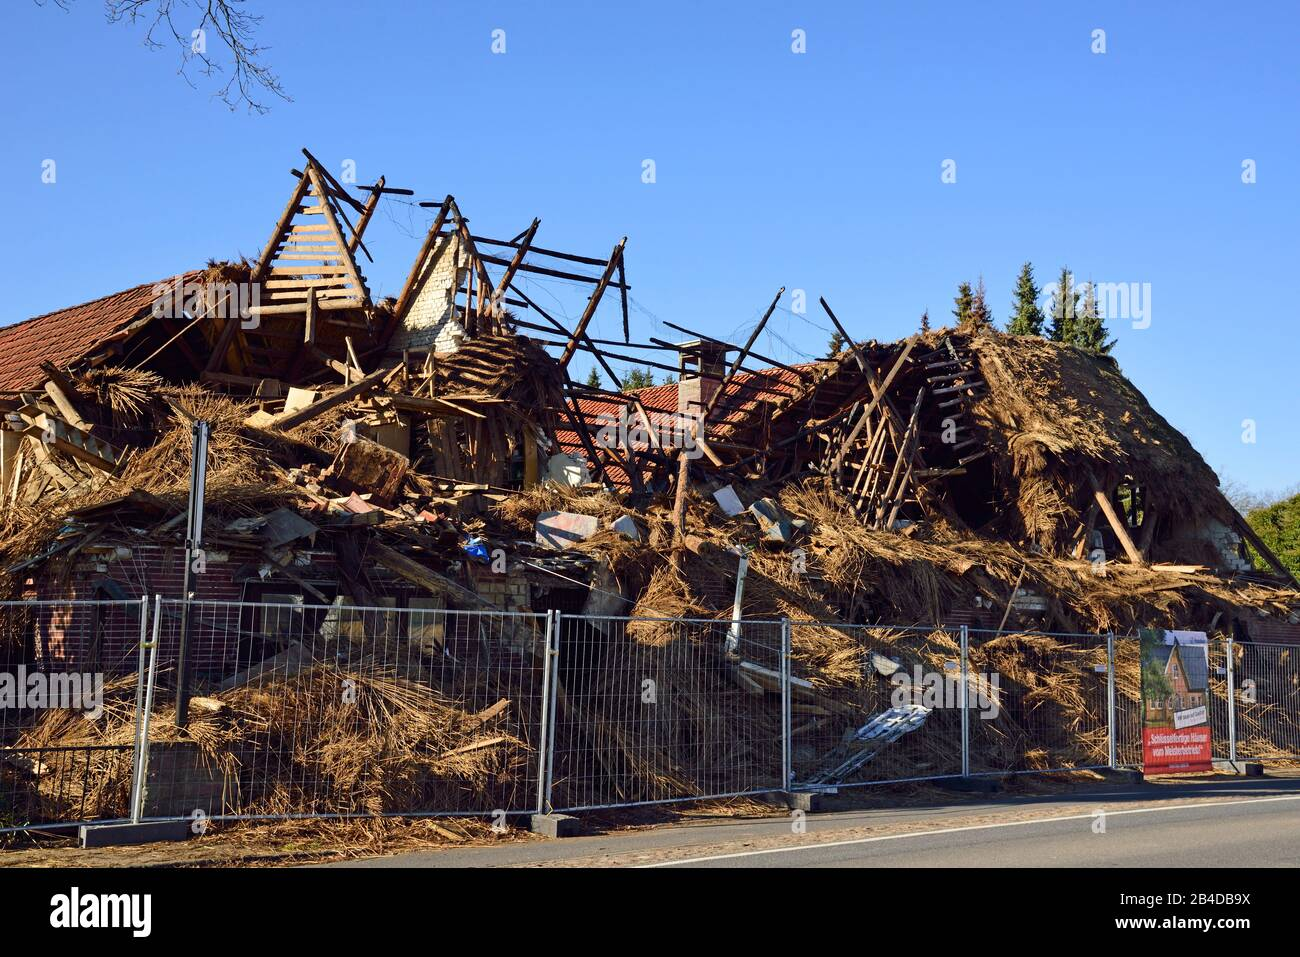 Thatched Roof Fire High Resolution Stock Photography And Images Alamy